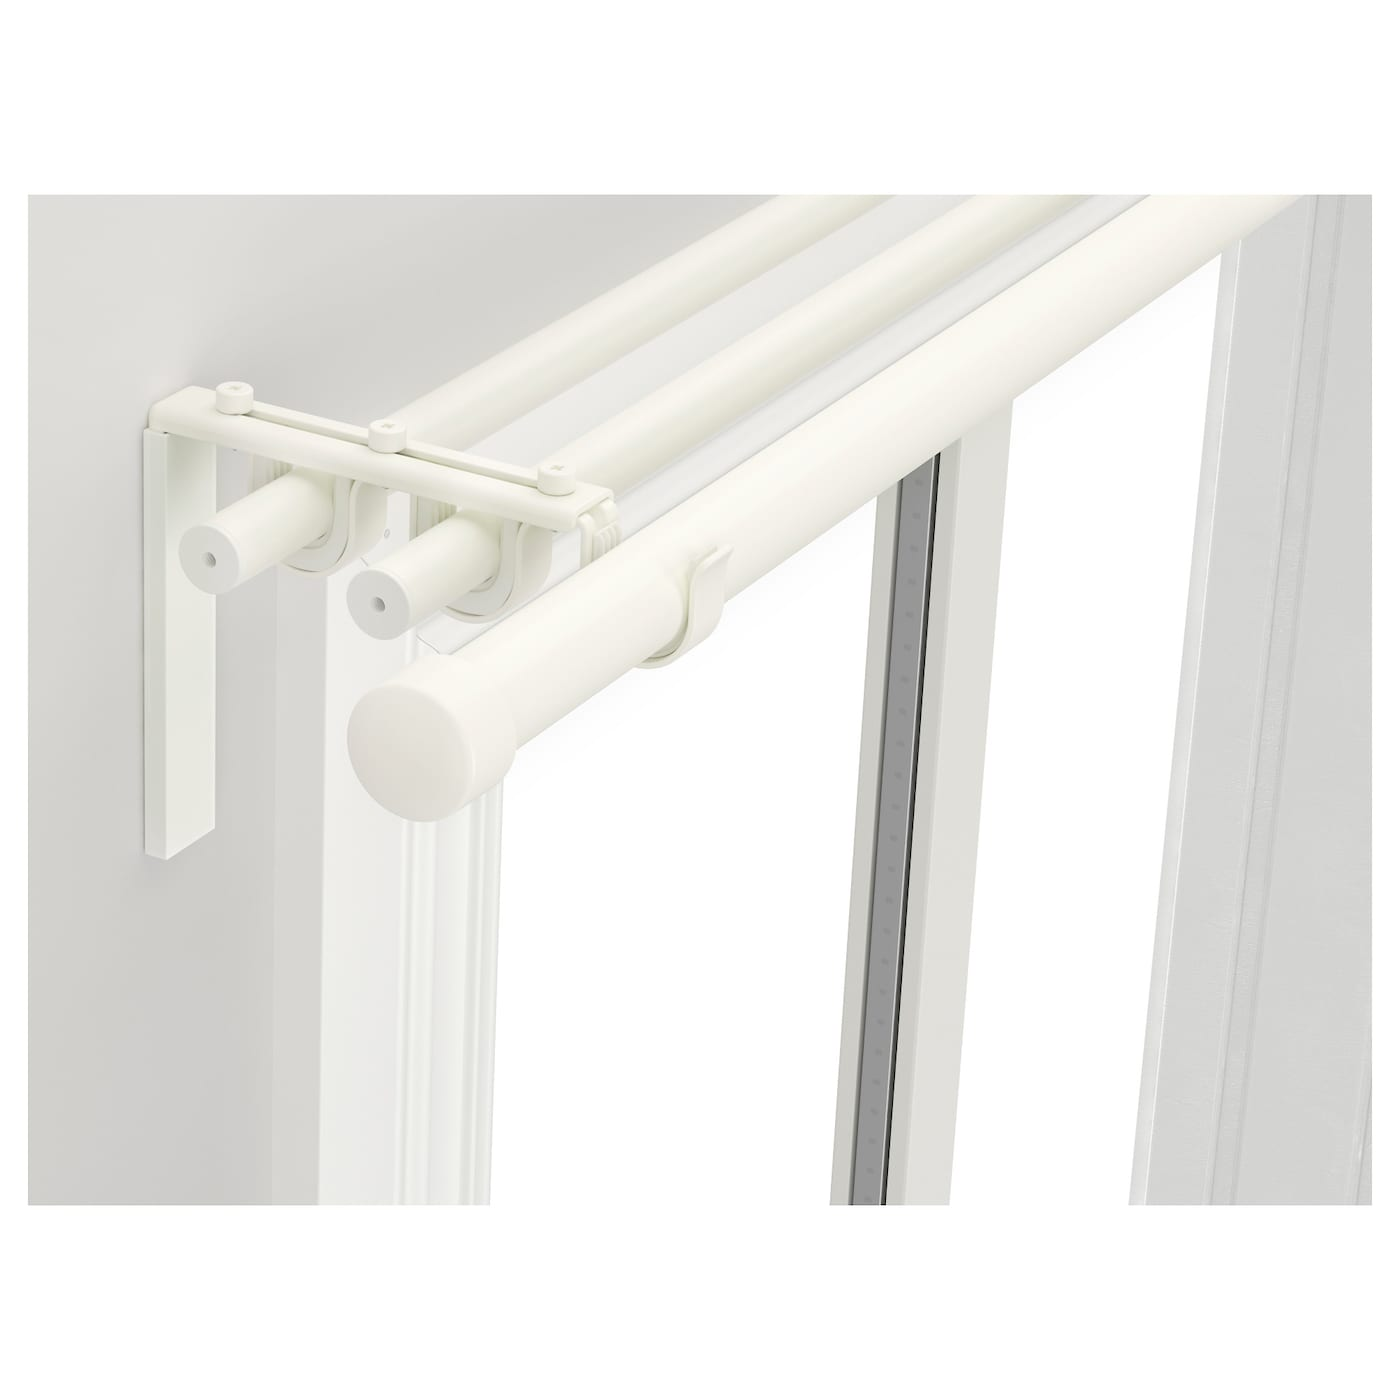 Ikea Hugad RÄcka Triple Curtain Rod Combination The Length Is Adjule